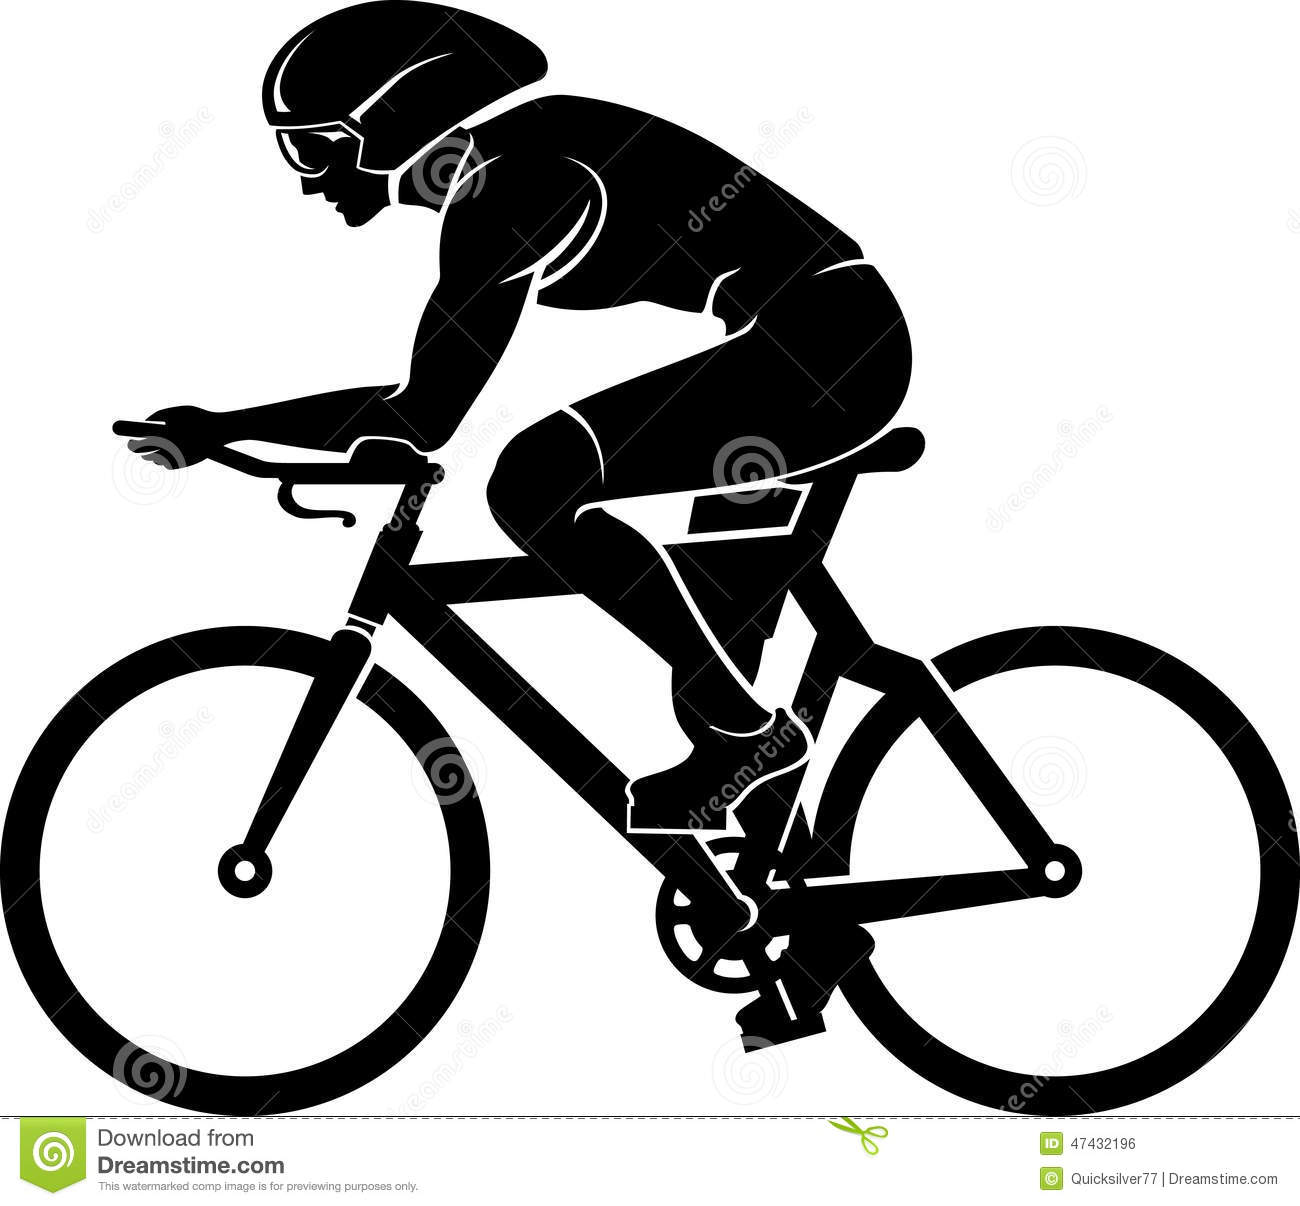 Cyclist silhouette stock illustration image 47432196